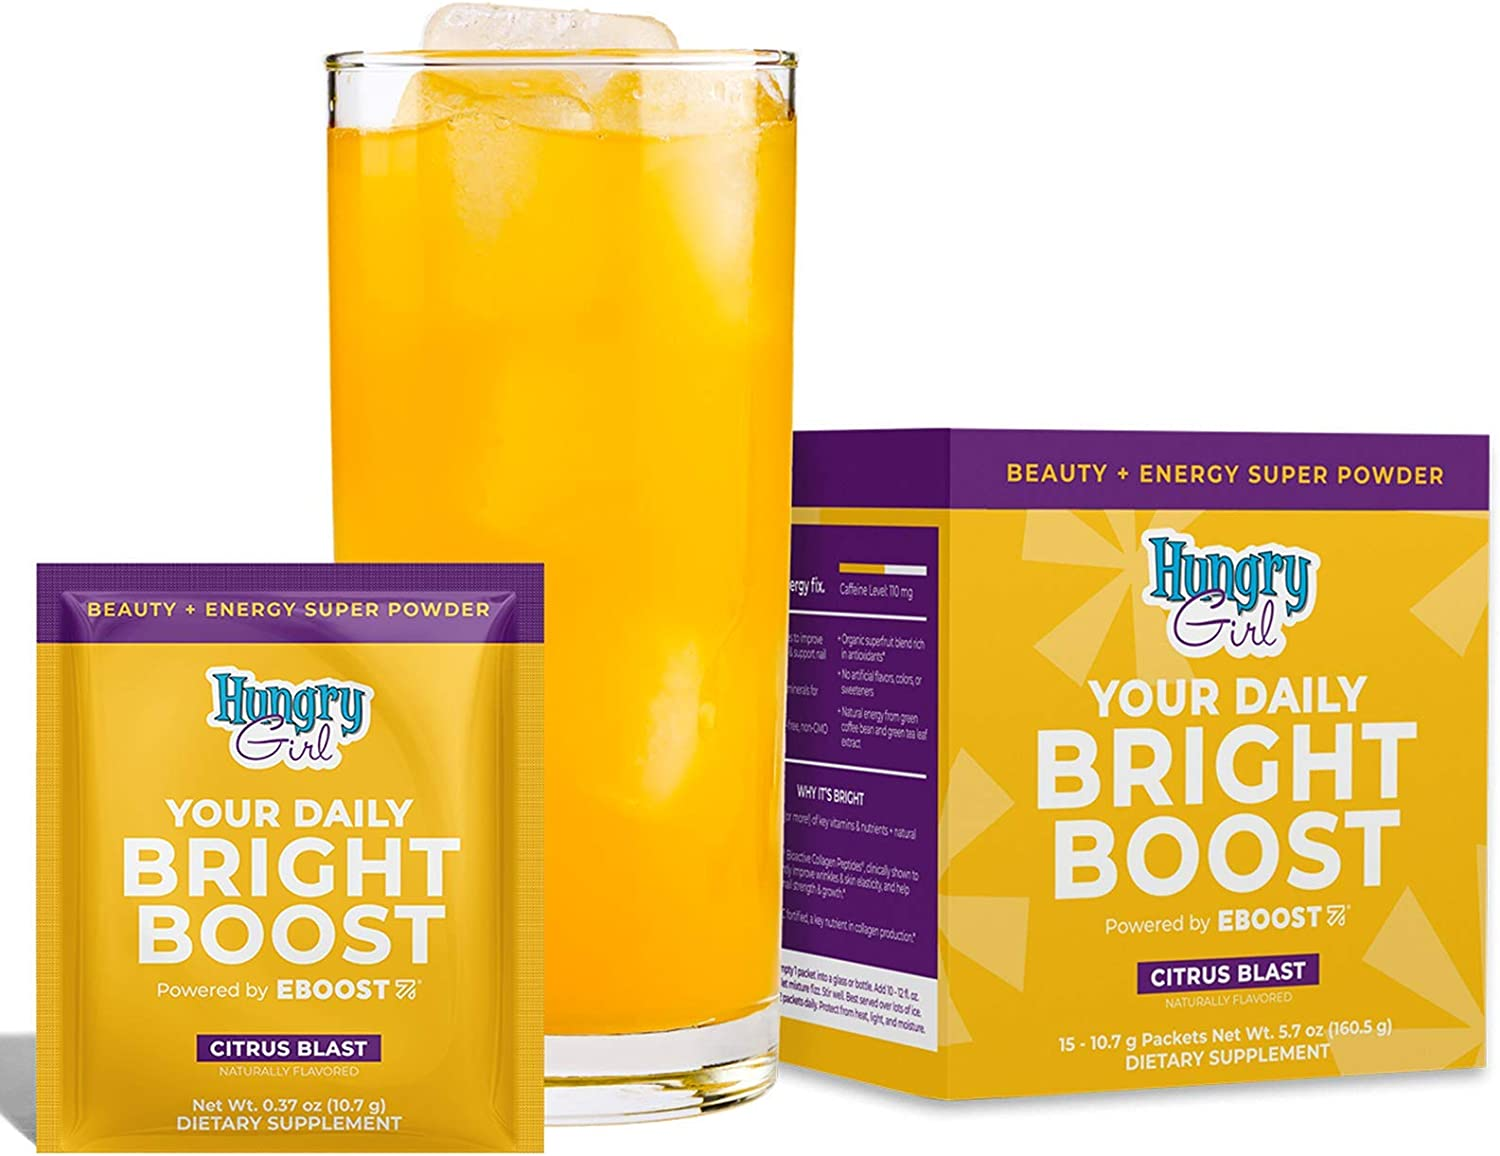 EBOOST Hungry Girl Your Daily Bright Boost – Beauty and Energy Powder – 15 Packets – Collagen Peptides for Healthier Hair, Skin and Nails – 15 Vitamins and Minerals for Daily Health and Immune Support